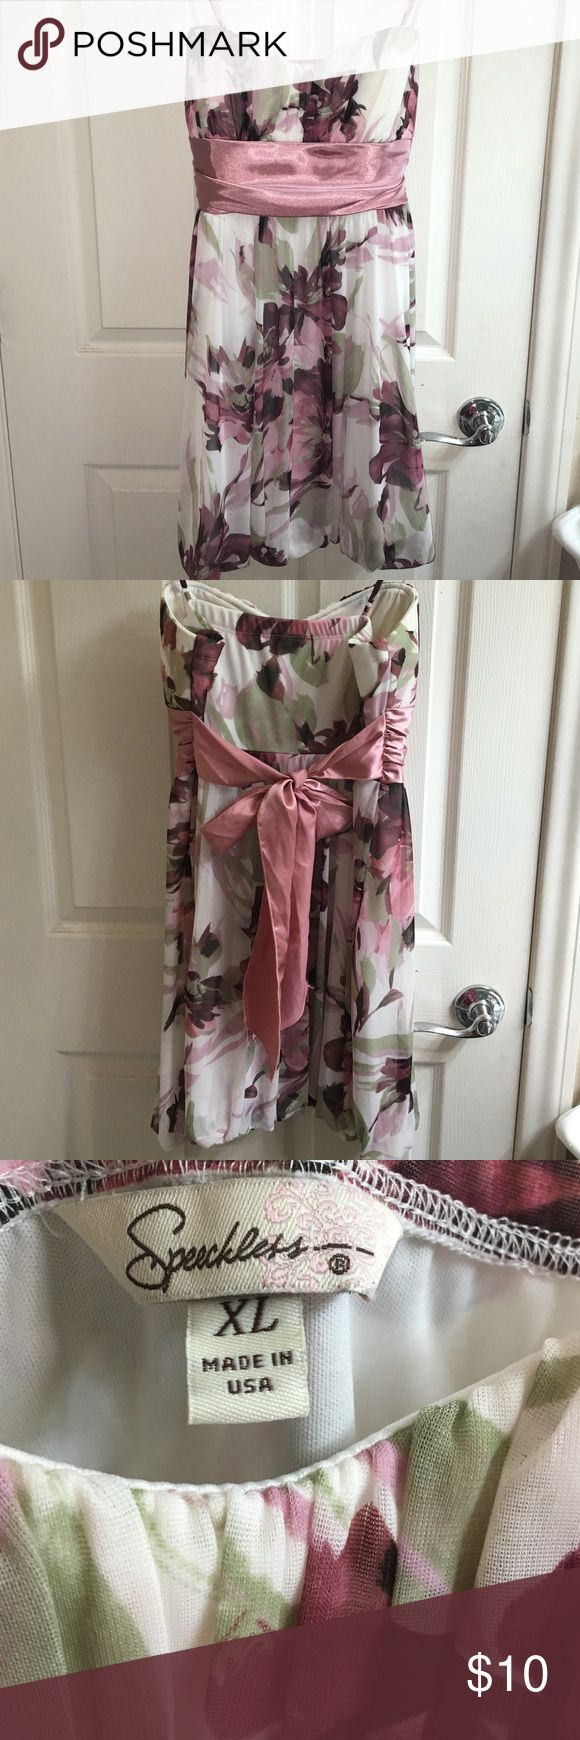 Formal Floral Dress. Sz: XL Excellent condition, no loose threads/stains/tears. Adjustable (non-removable) straps. Lightly padded. Junior's XL so can fit Women's M-L. Sheer floral outer layer, sewn at the bottom to an opaque cream inner layer. Satin tie-back bow (non-removable). Bought from Macy's. Brand is Speechless. Dresses Mini